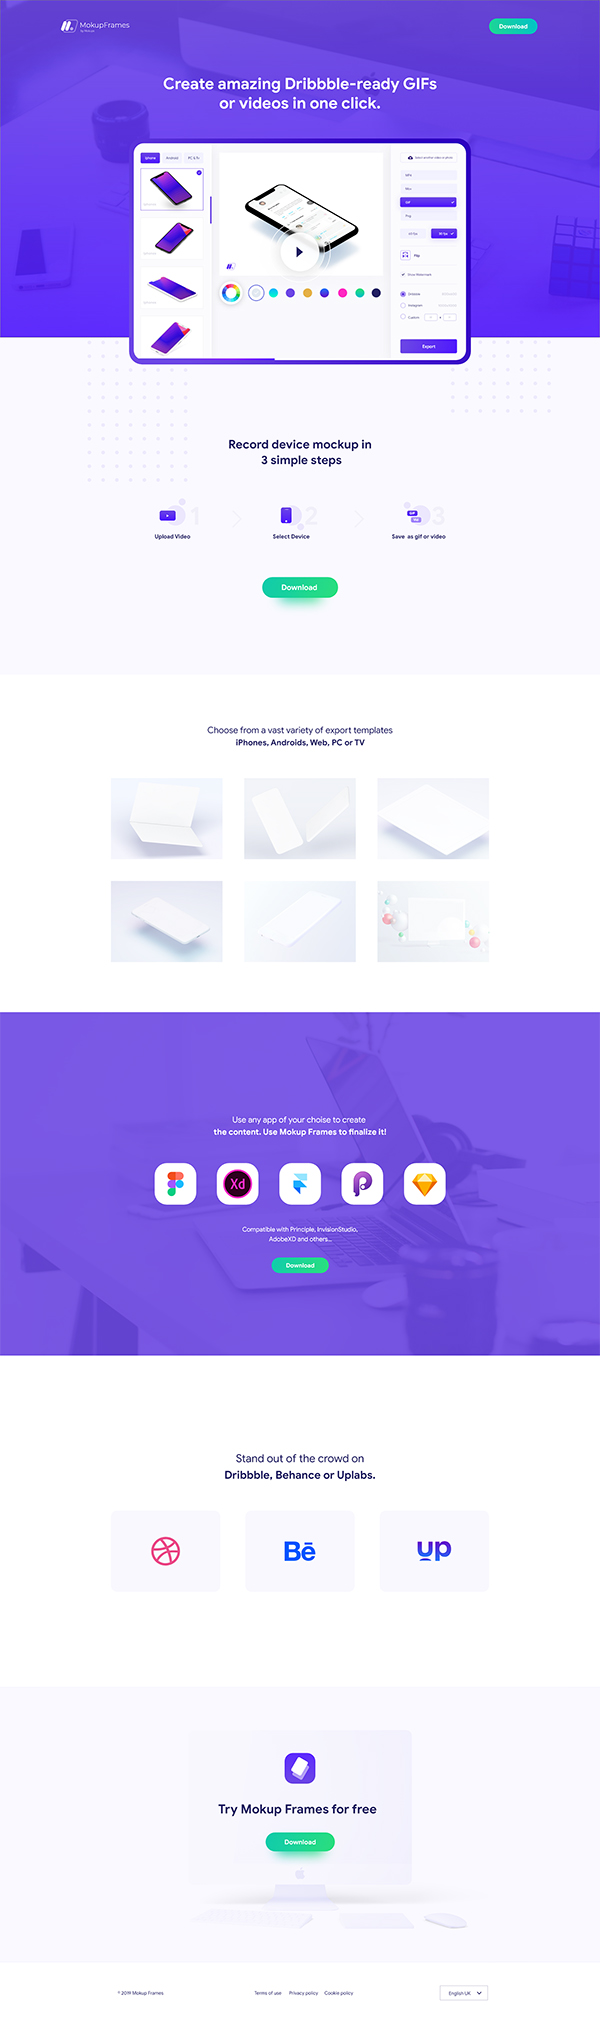 Mokupframes Landing Page and App Design